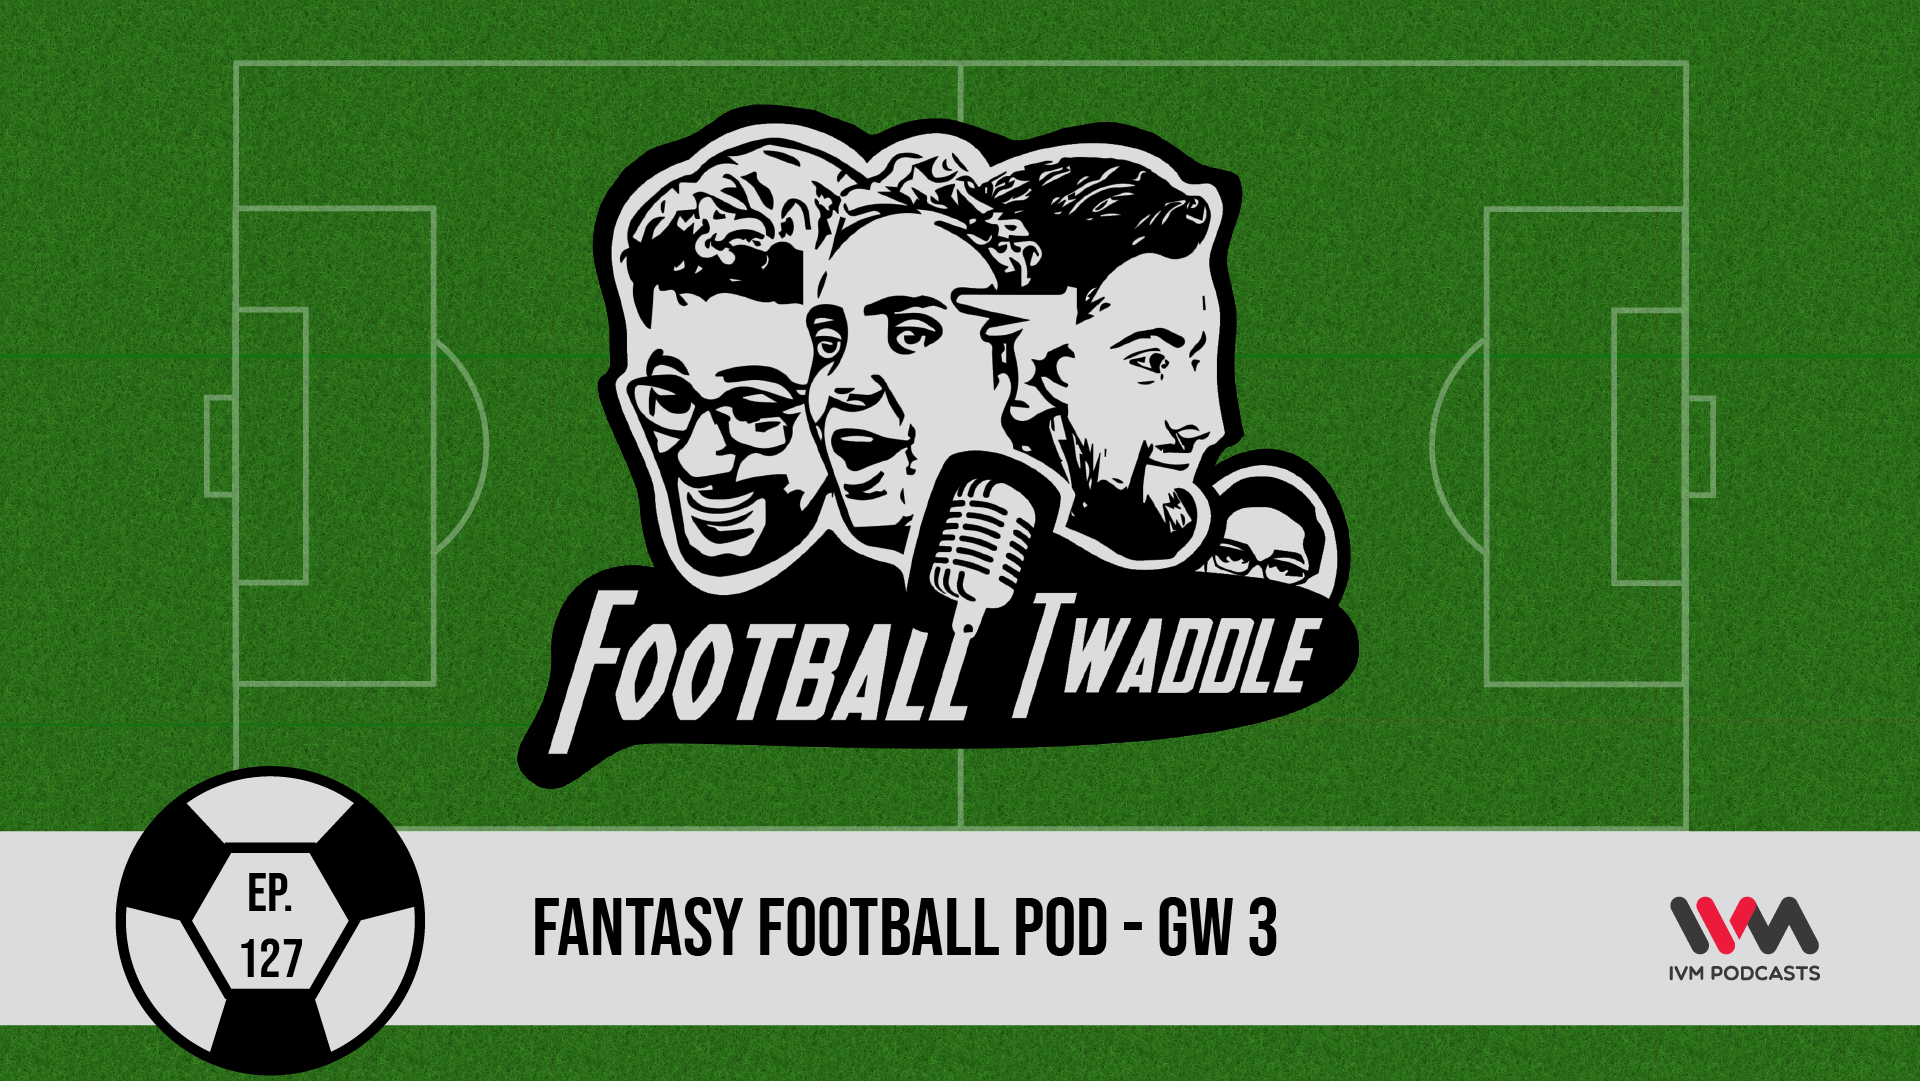 FootballTwaddleEpisode127.png